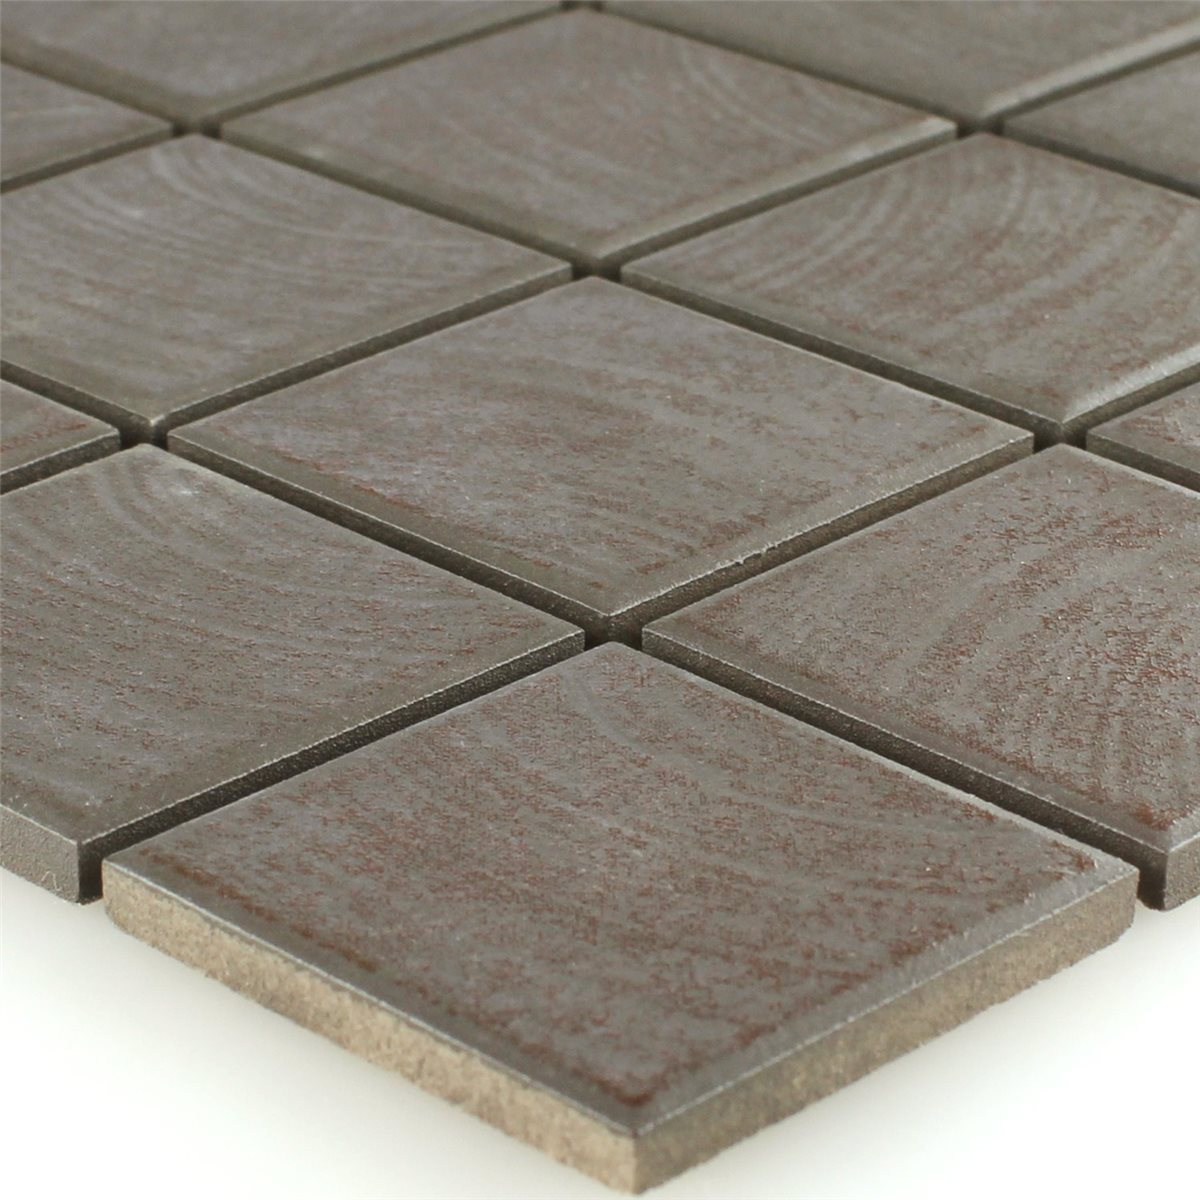 Fliesen Bad Braun: Ceramic Mosaic Tiles Non-Slip Brown Structured